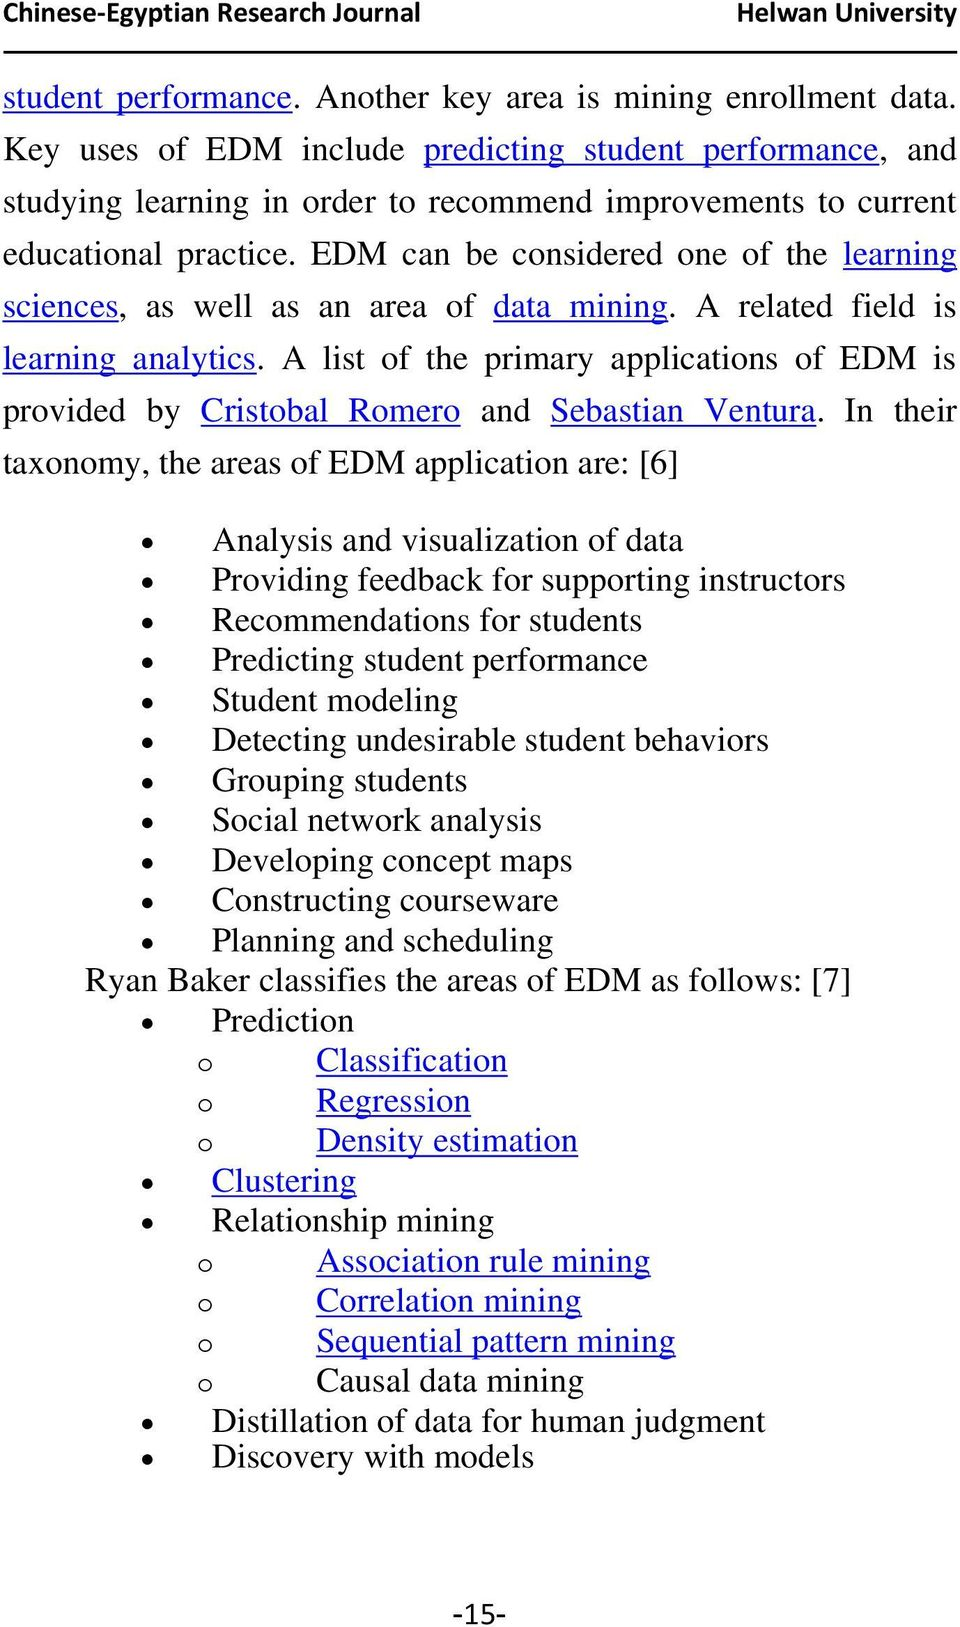 EDM can be considered one of the learning sciences, as well as an area of data mining. A related field is learning analytics.